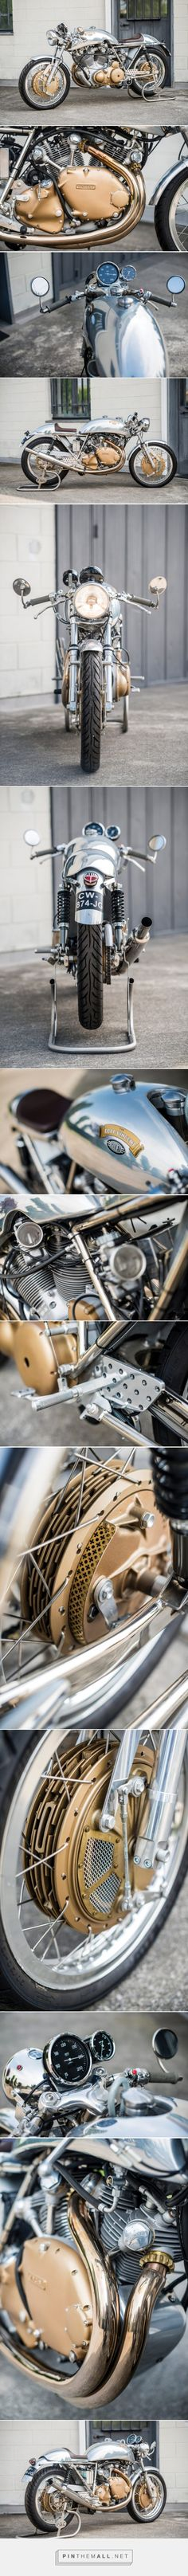 1968 Egli-Vincent 1330 by Godet - created via https://pinthemall.net